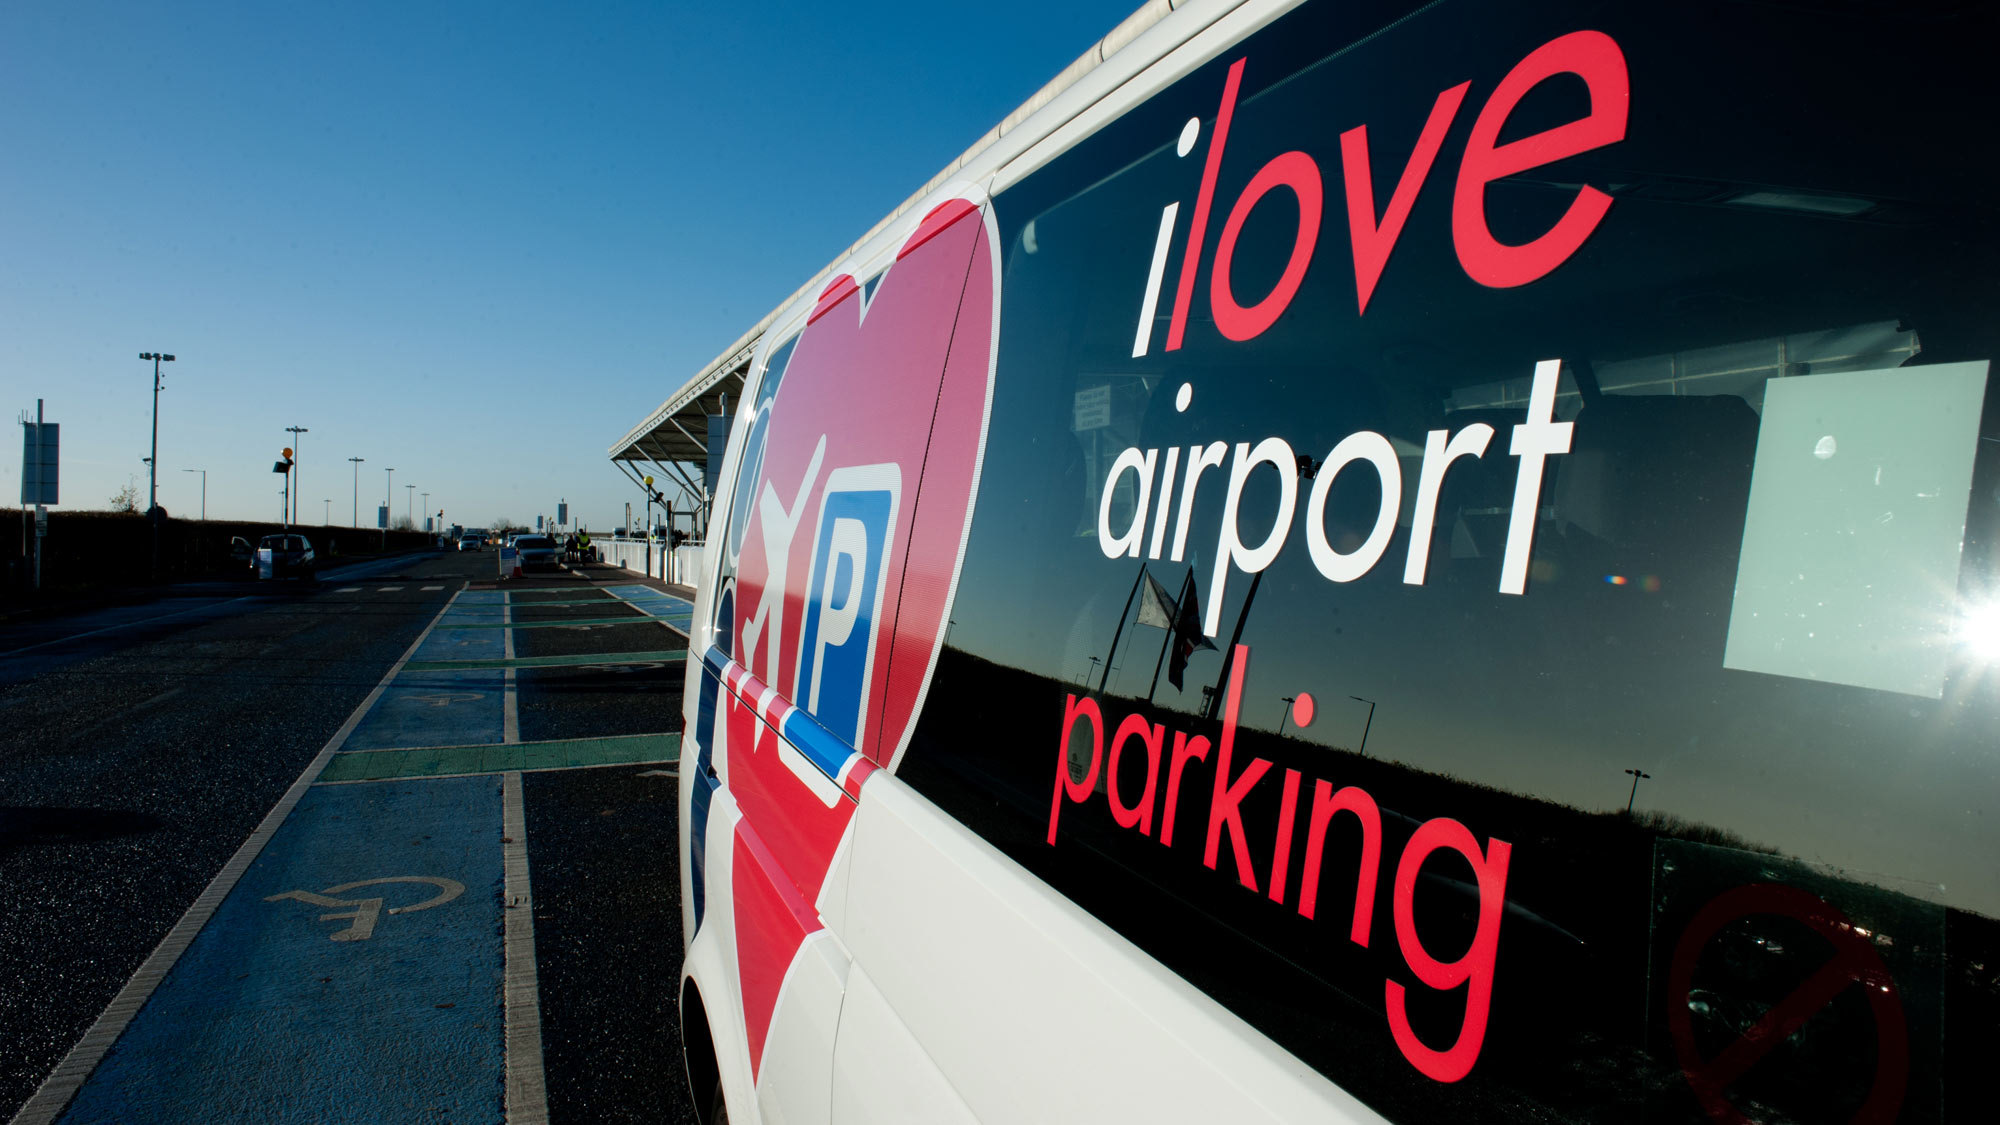 Airport Park Ride Airport Parking At Stansted I Love